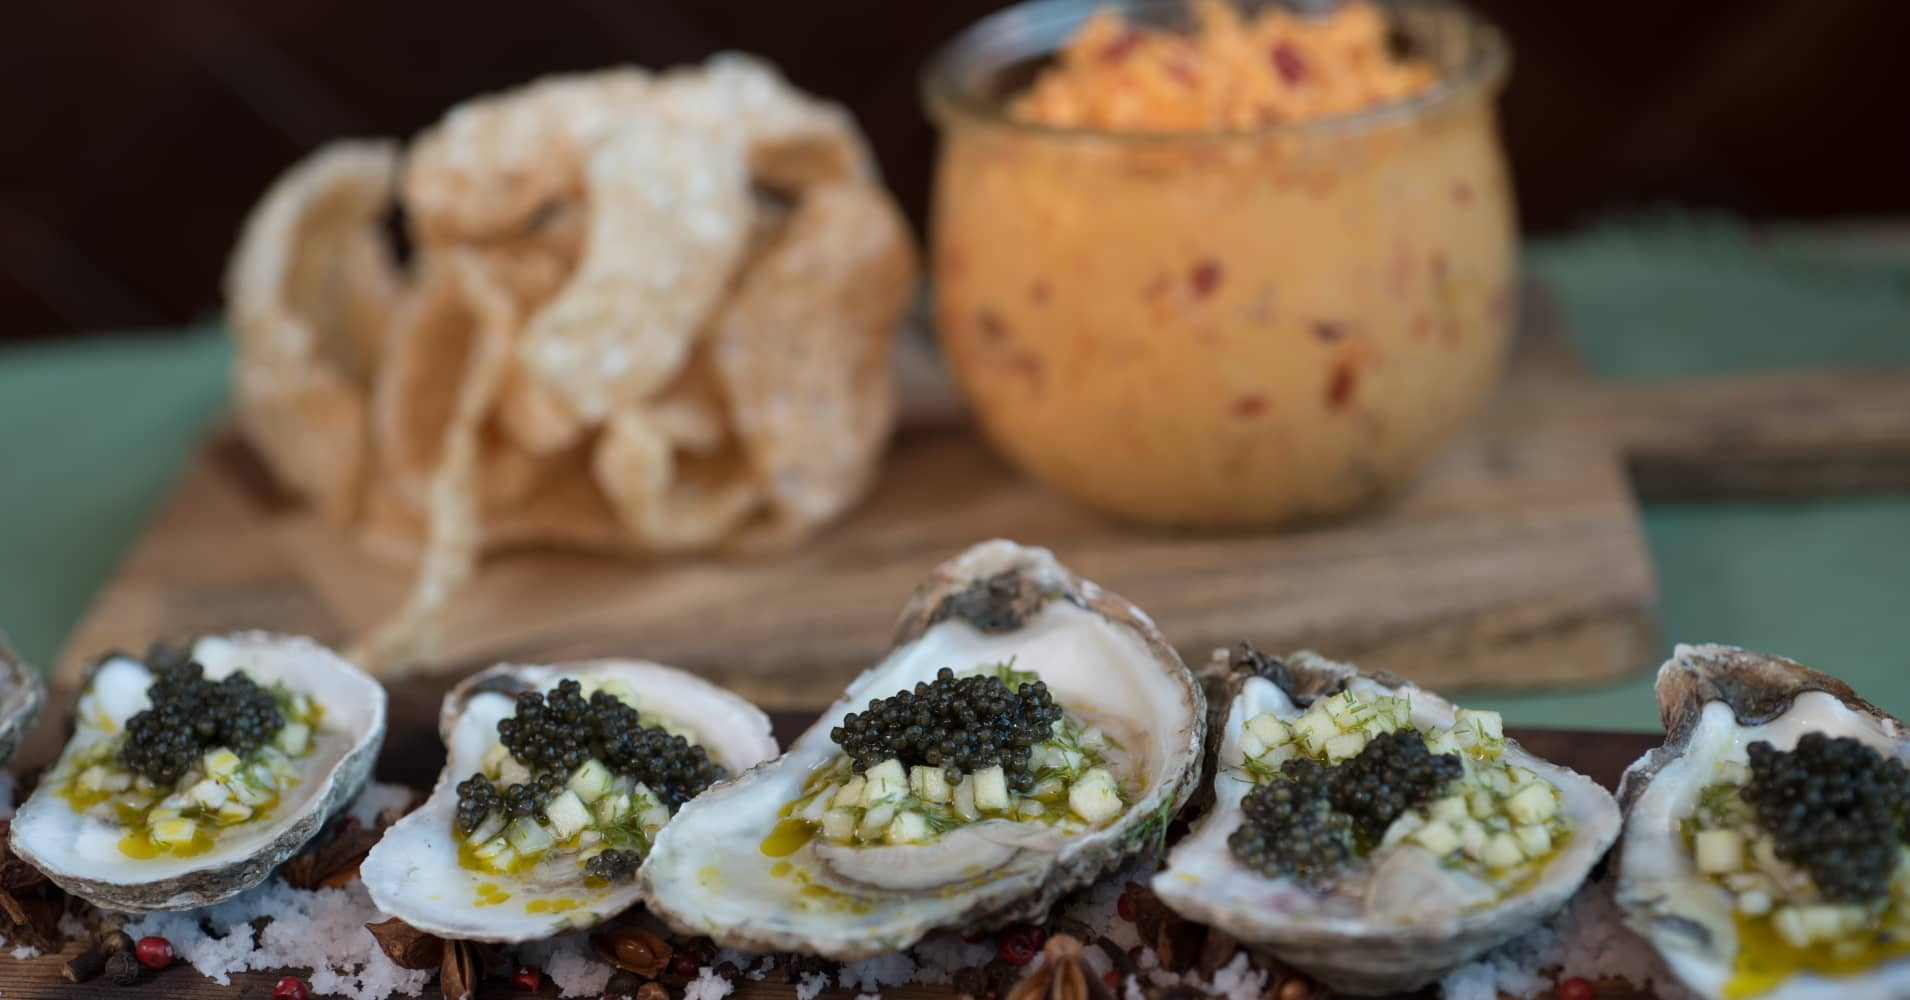 The appetizers include chilled oysters and cracklins' with pimento cheese